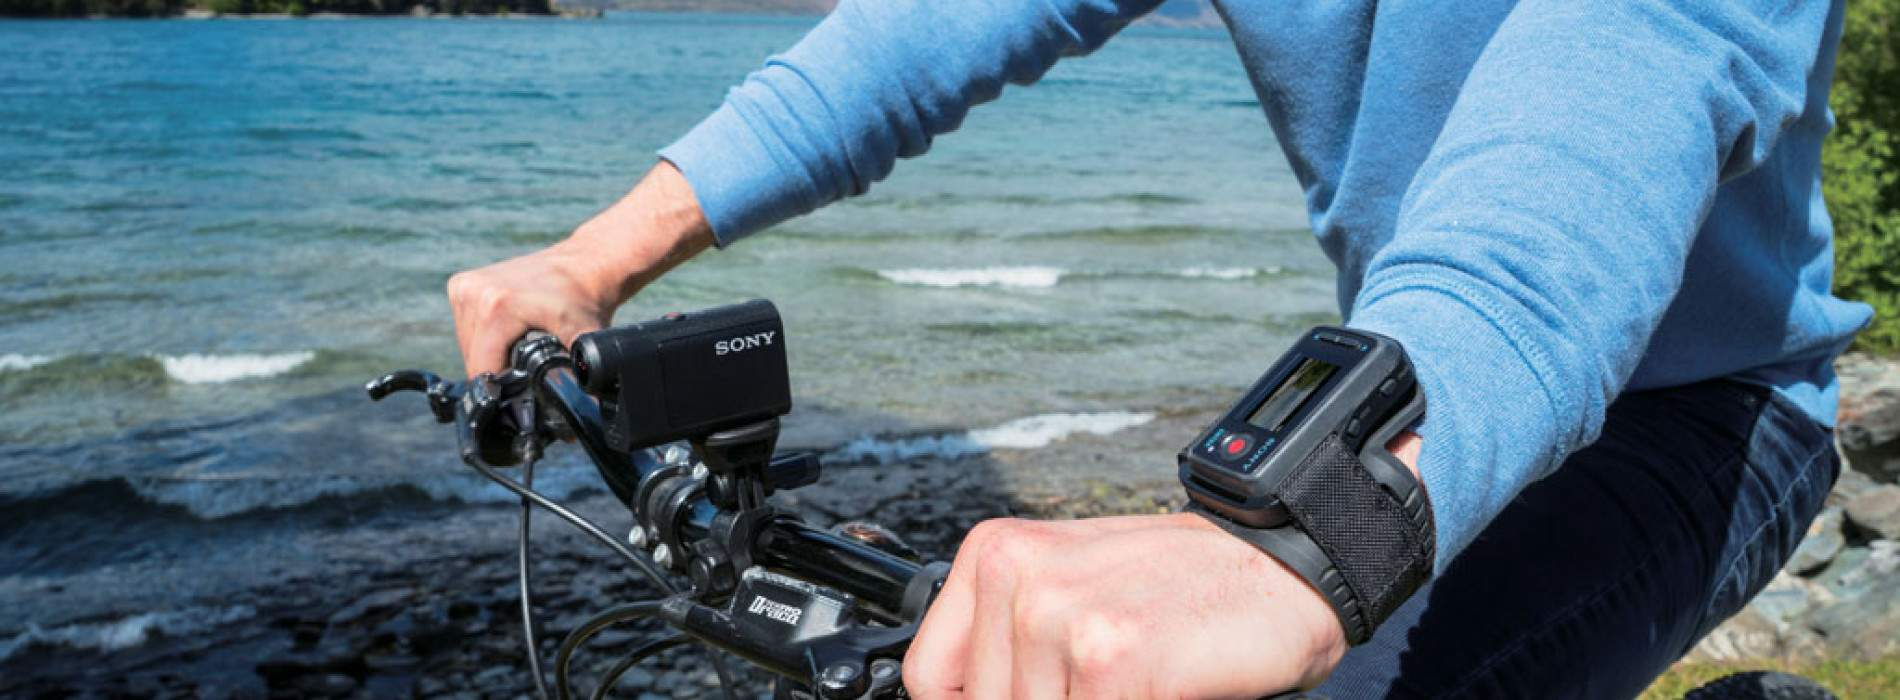 Revive tus aventuras con la nueva Action Cam HDR-AS50 de Sony